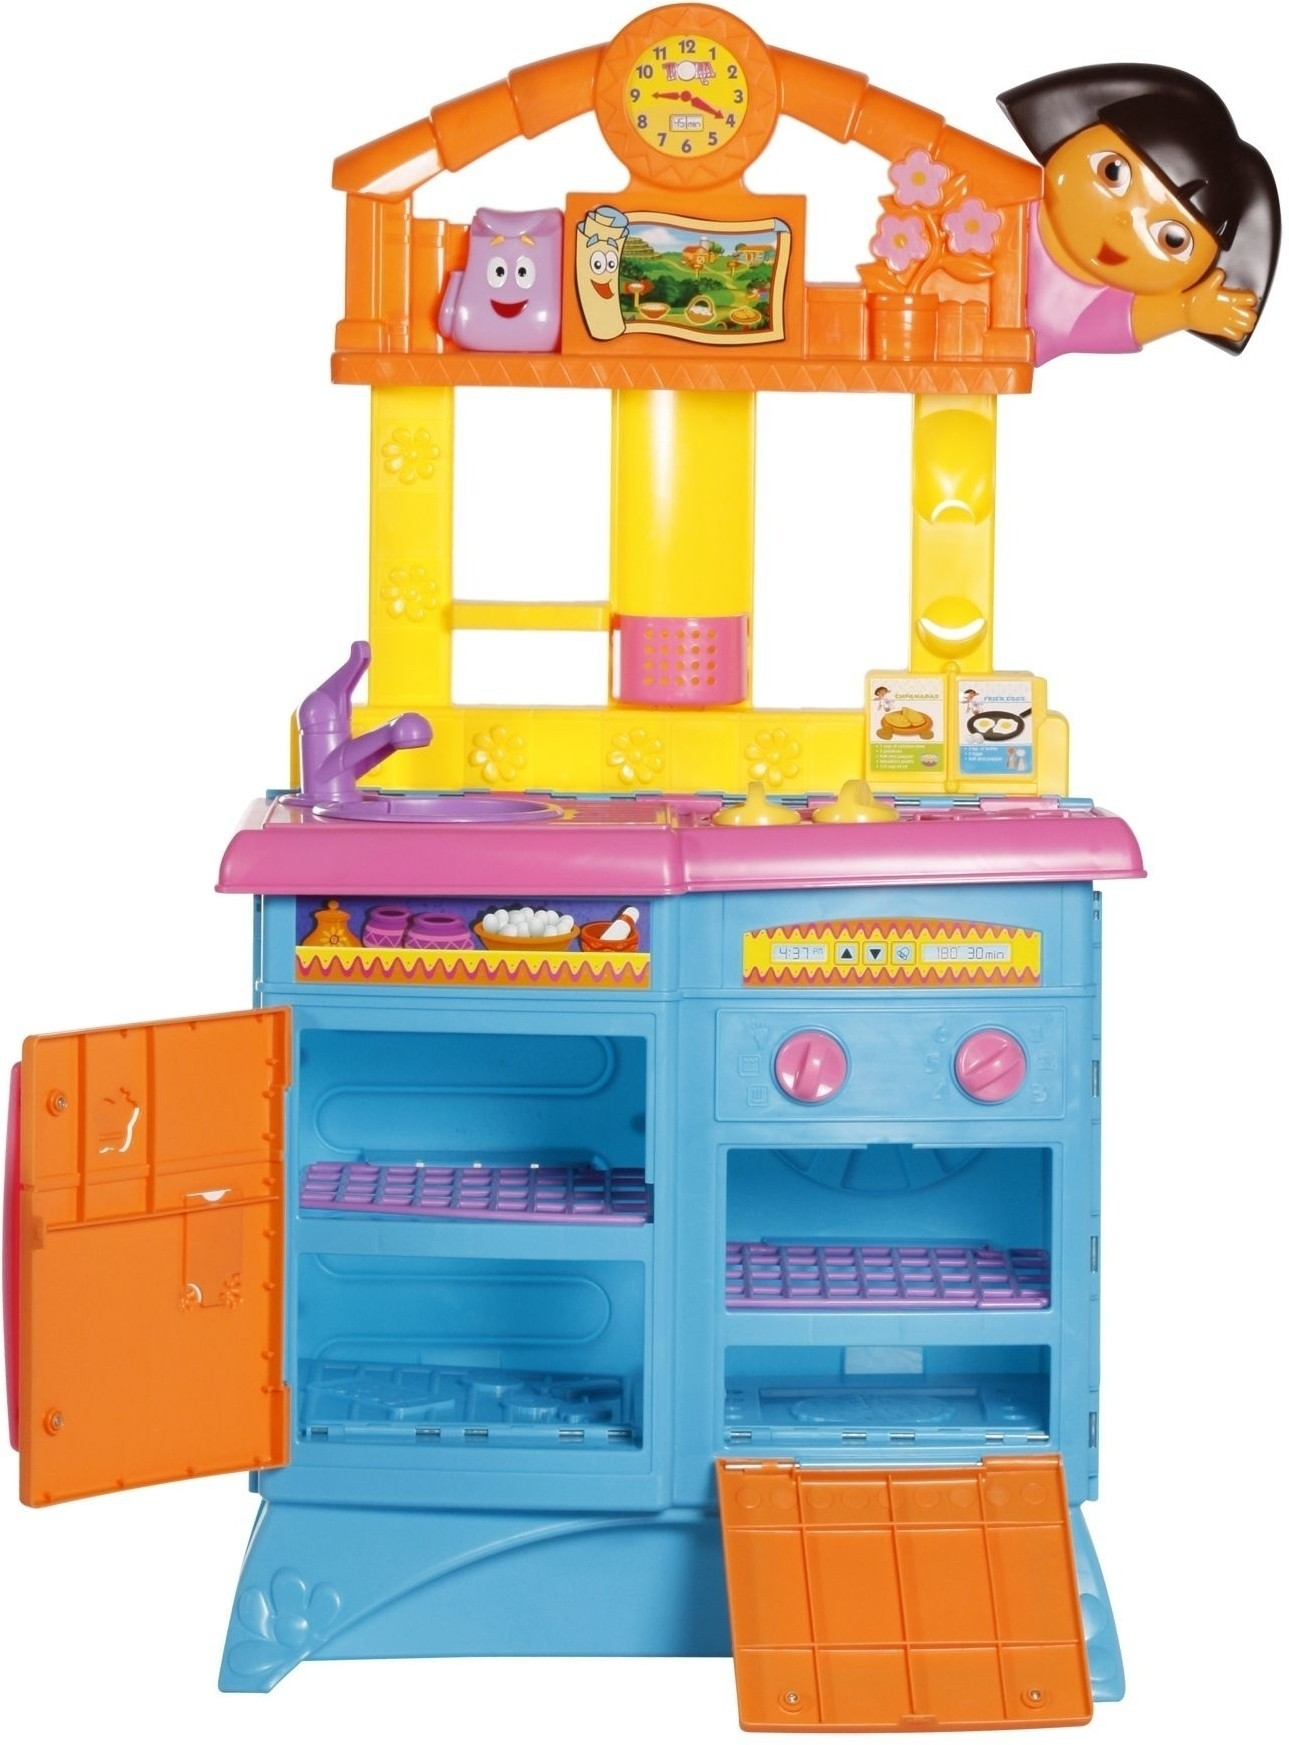 Price Of Dora Kitchen Set In India Kitchen Appliances Tips And Review